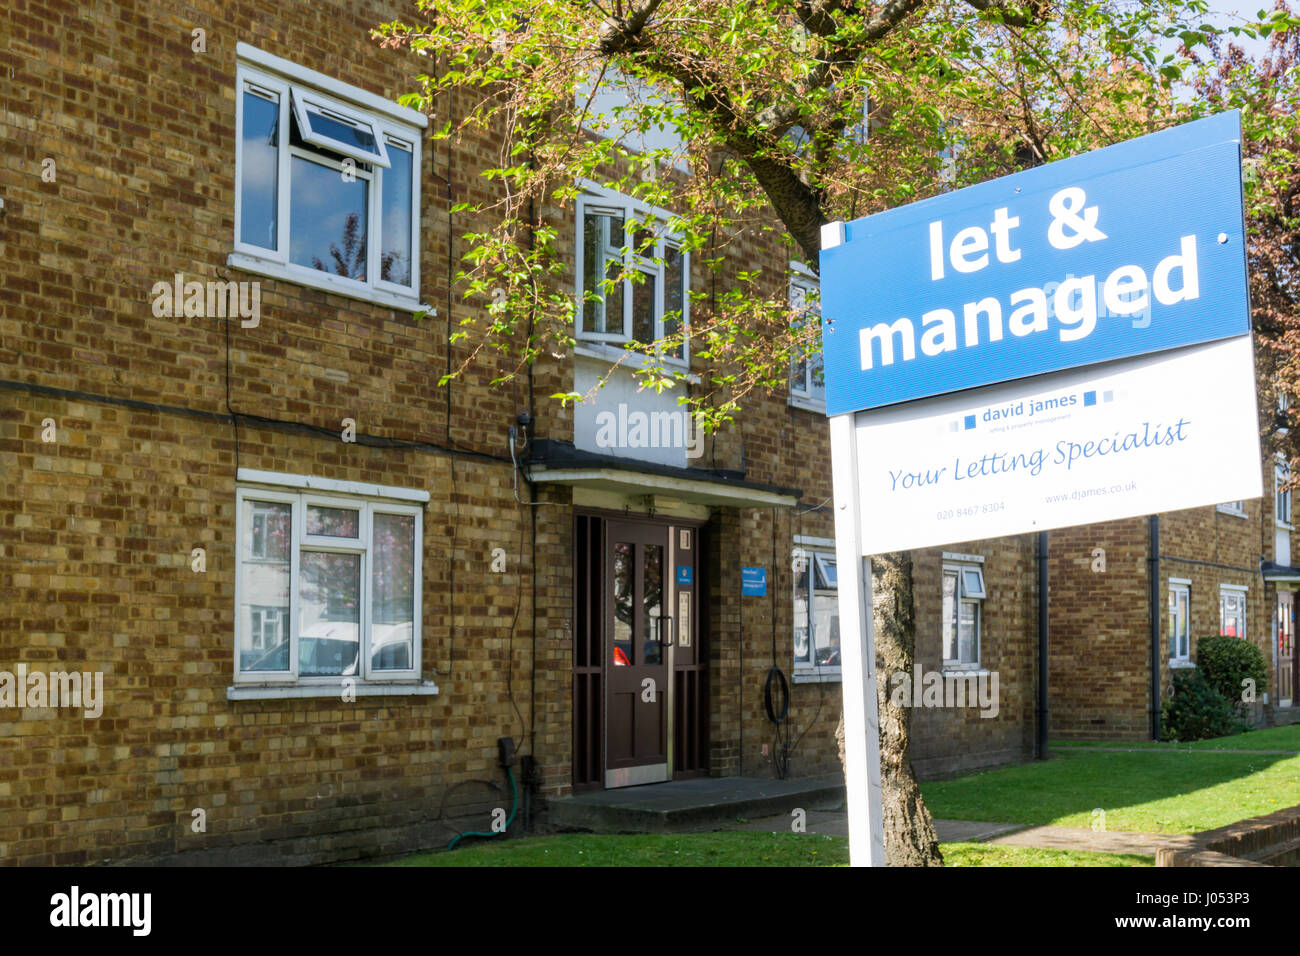 Let & Managed estate agency sign on houses. - Stock Image